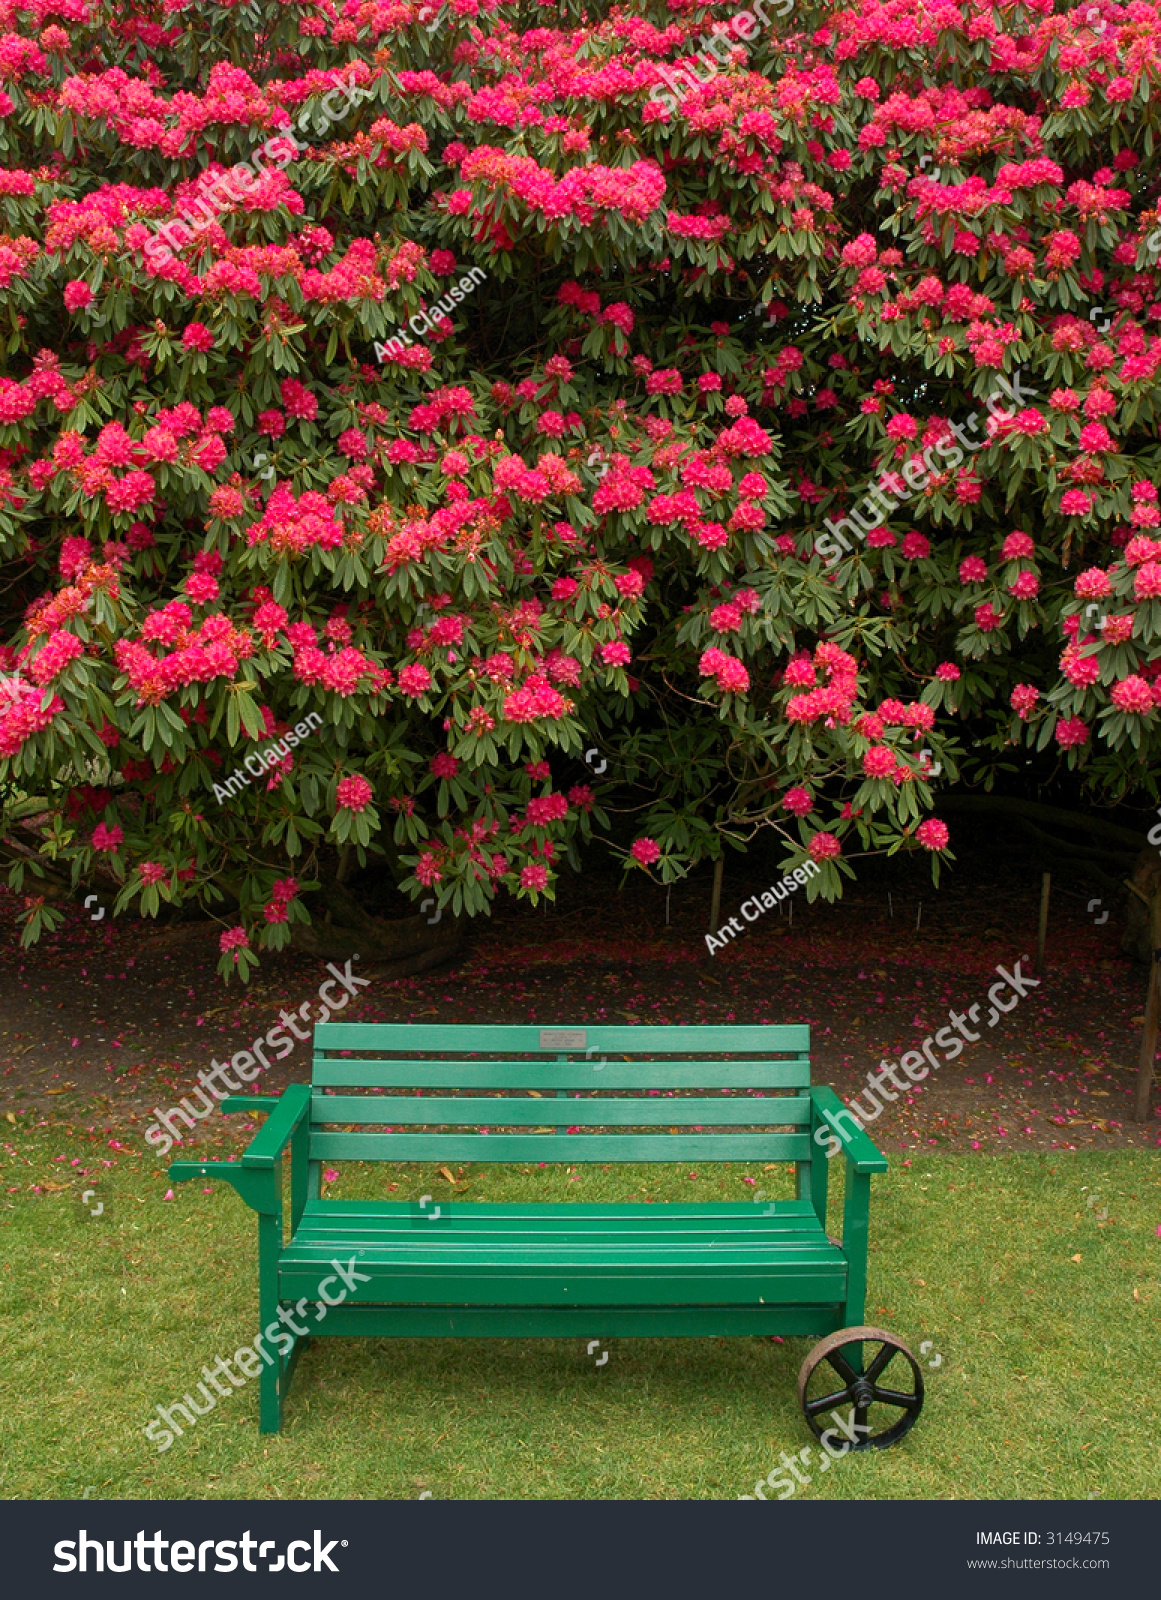 Green Park Bench Pink Flowers Background Stock Photo 3149475 ... for Park Background With Bench  165jwn